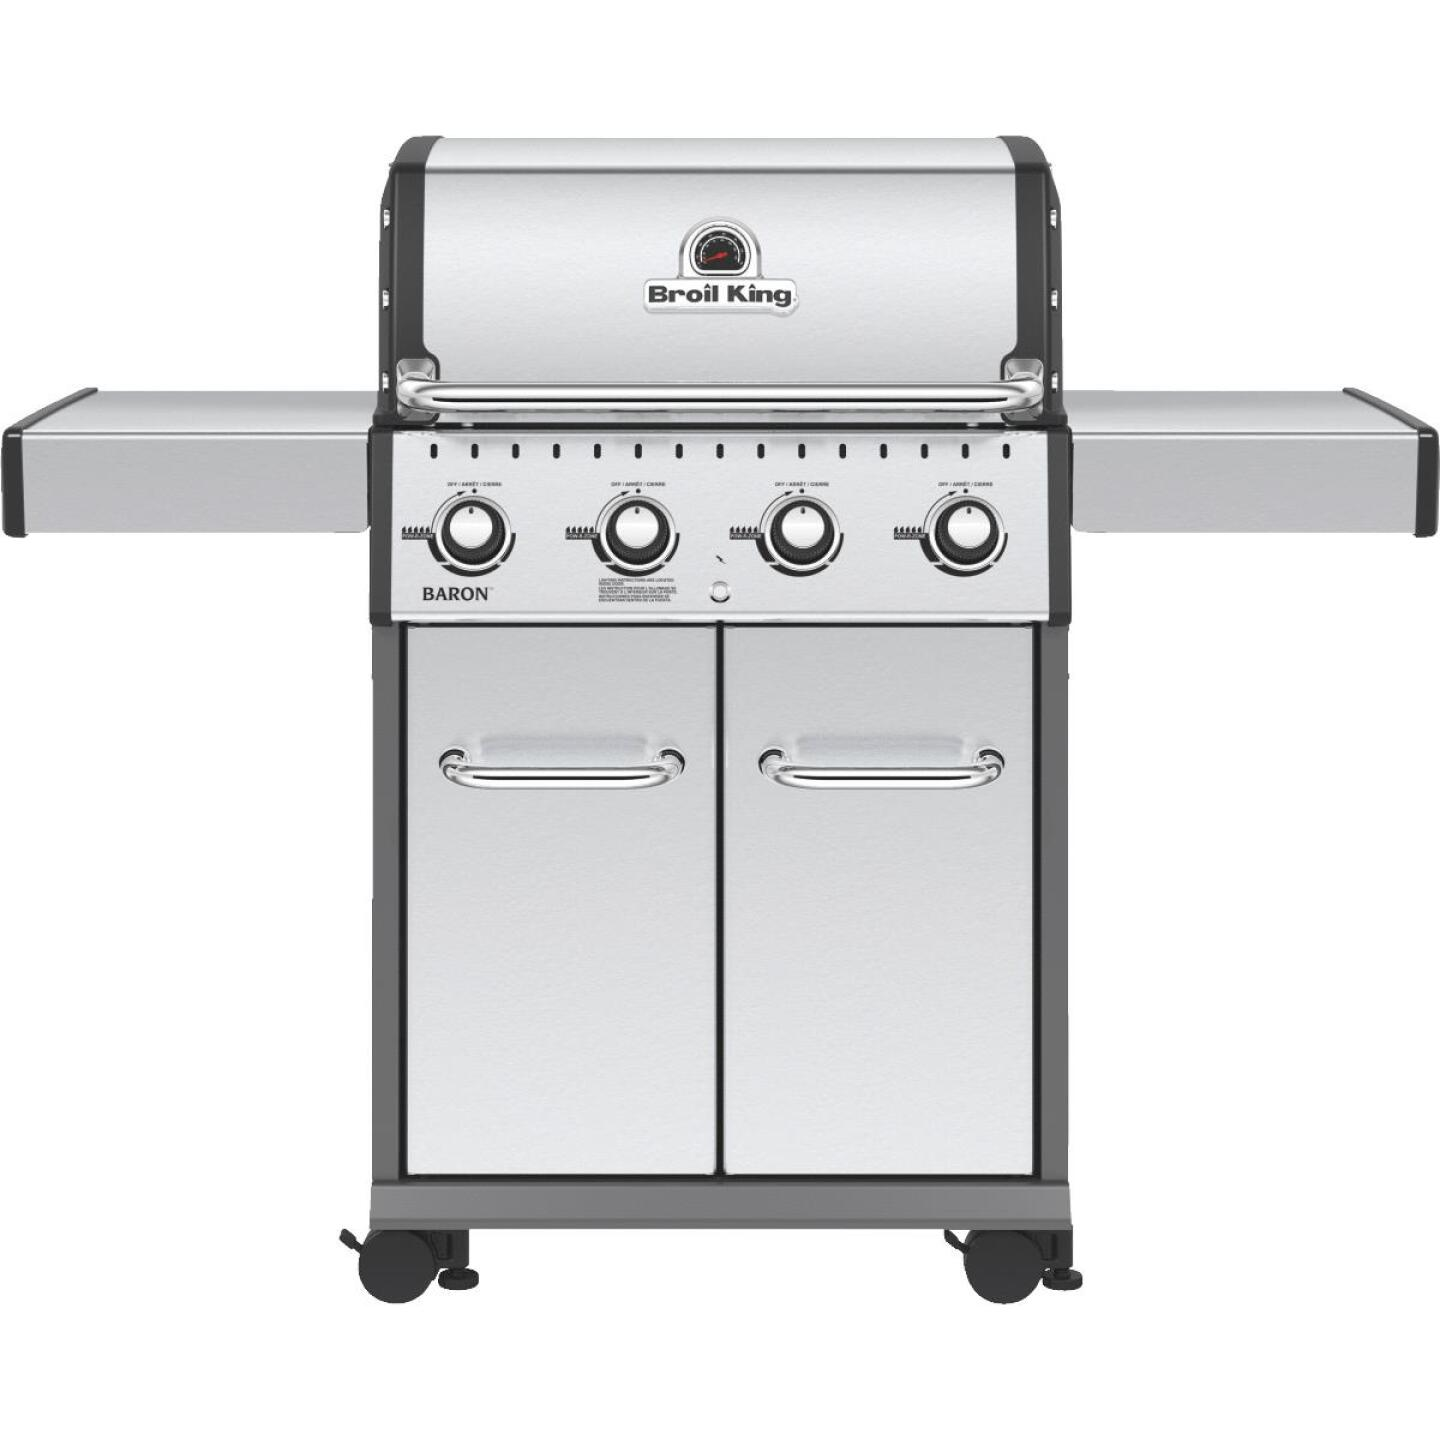 Broil King Baron S420 Pro Special Edition 4-Burner Stainless Steel 40,000 BTU LP Gas Grill Image 1